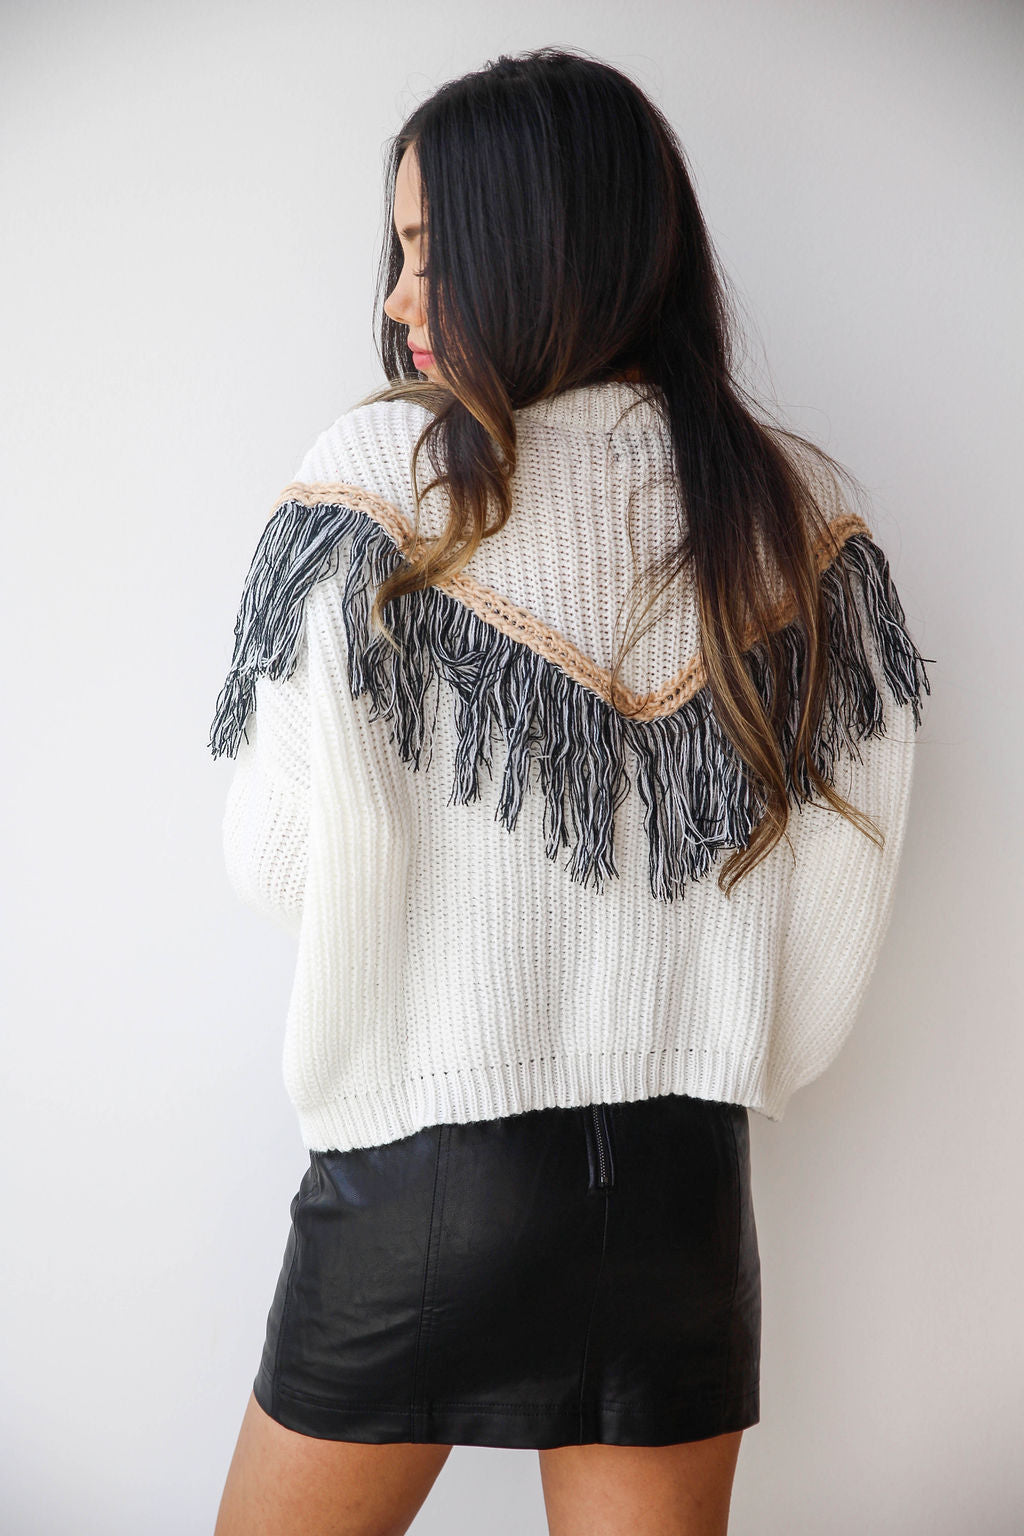 mode, in the fringe sweater